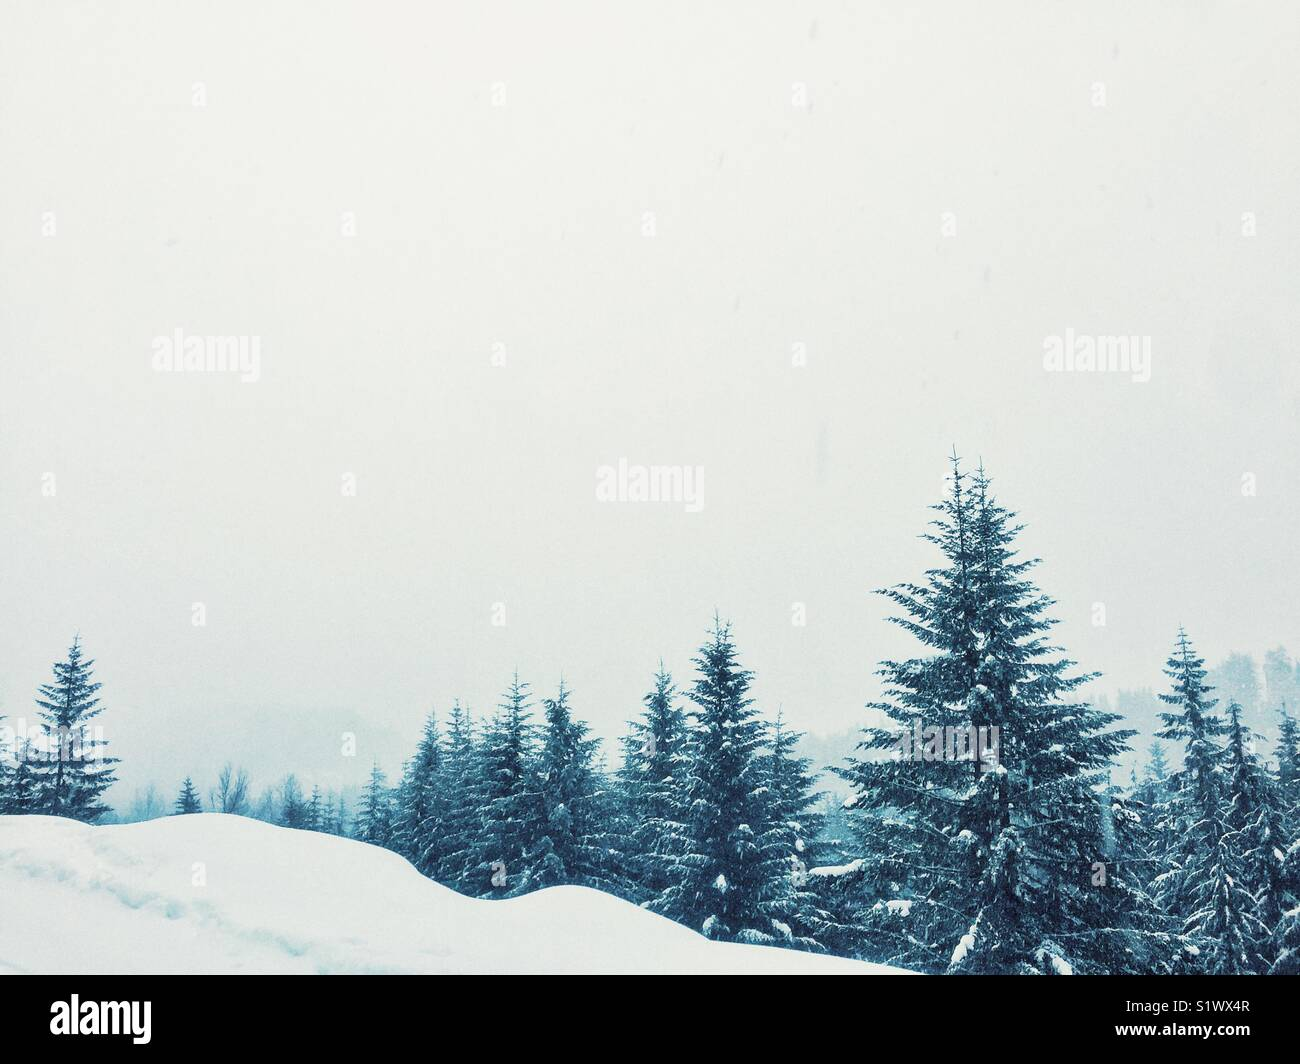 Snow covered conifers in winter wonderland near Snoqualmie pass, half an hour from rainy Seattle - Stock Image